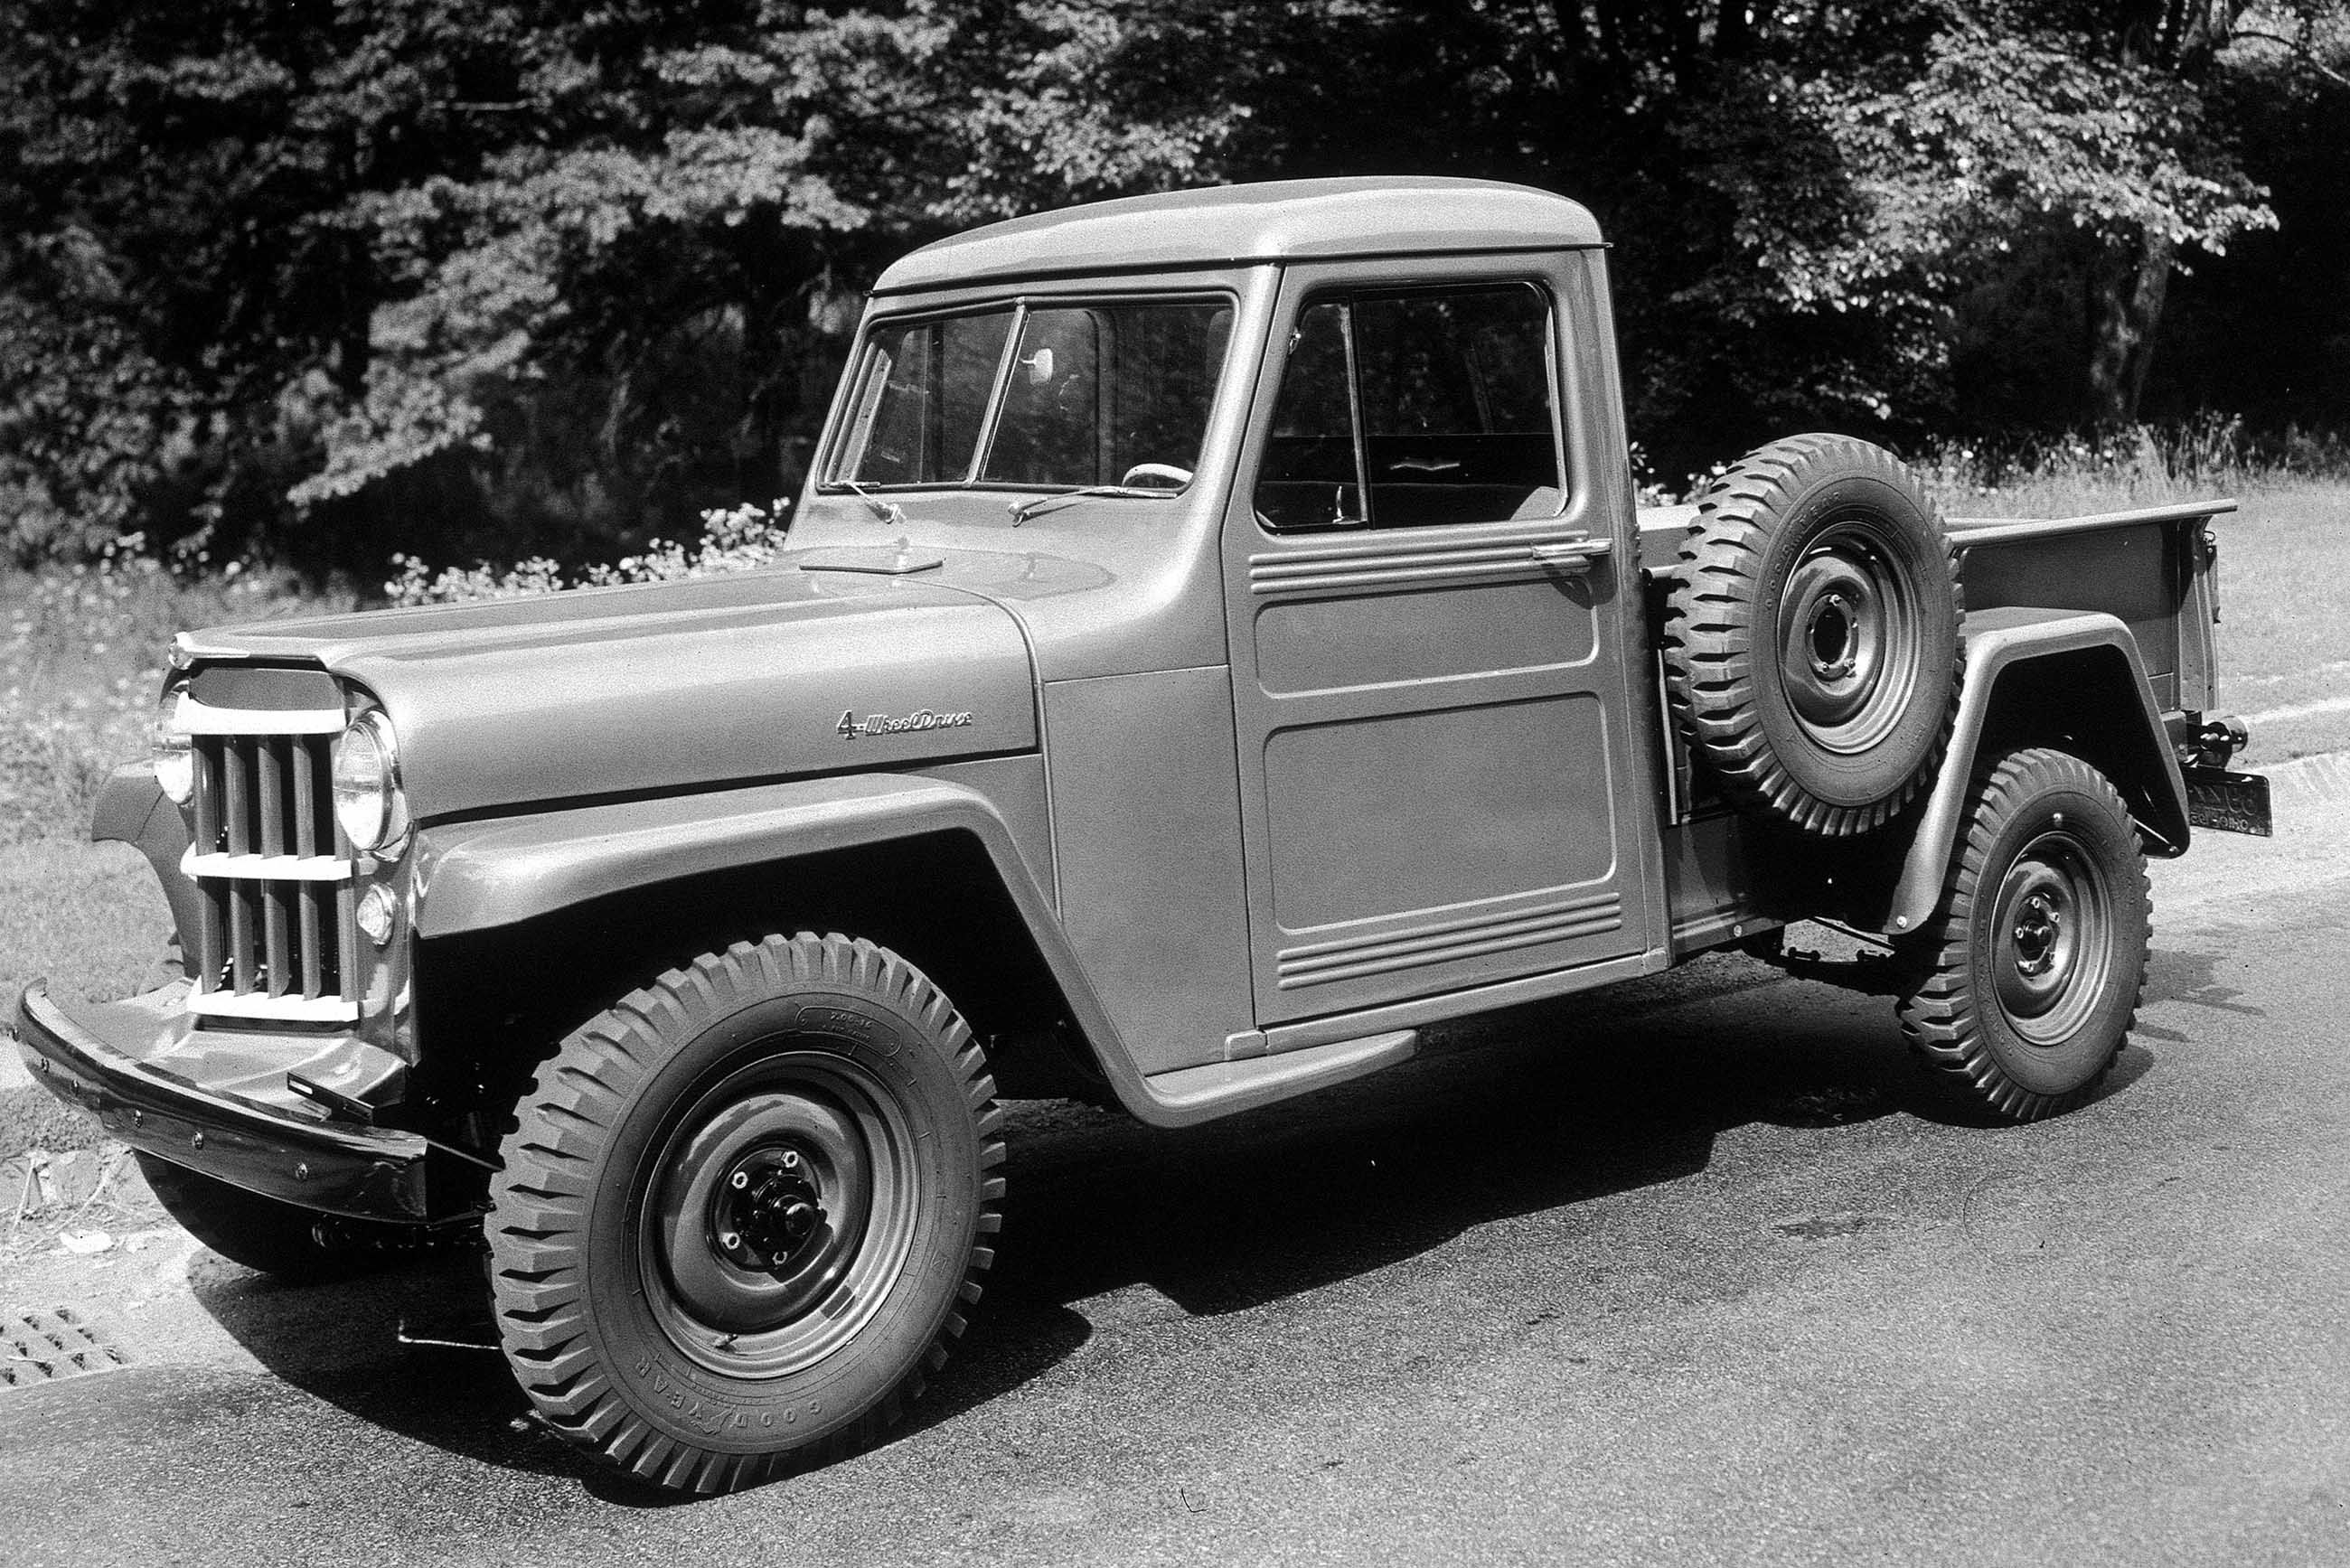 Throwback Thursday Who Can Name The Model Of This Classic Jeep